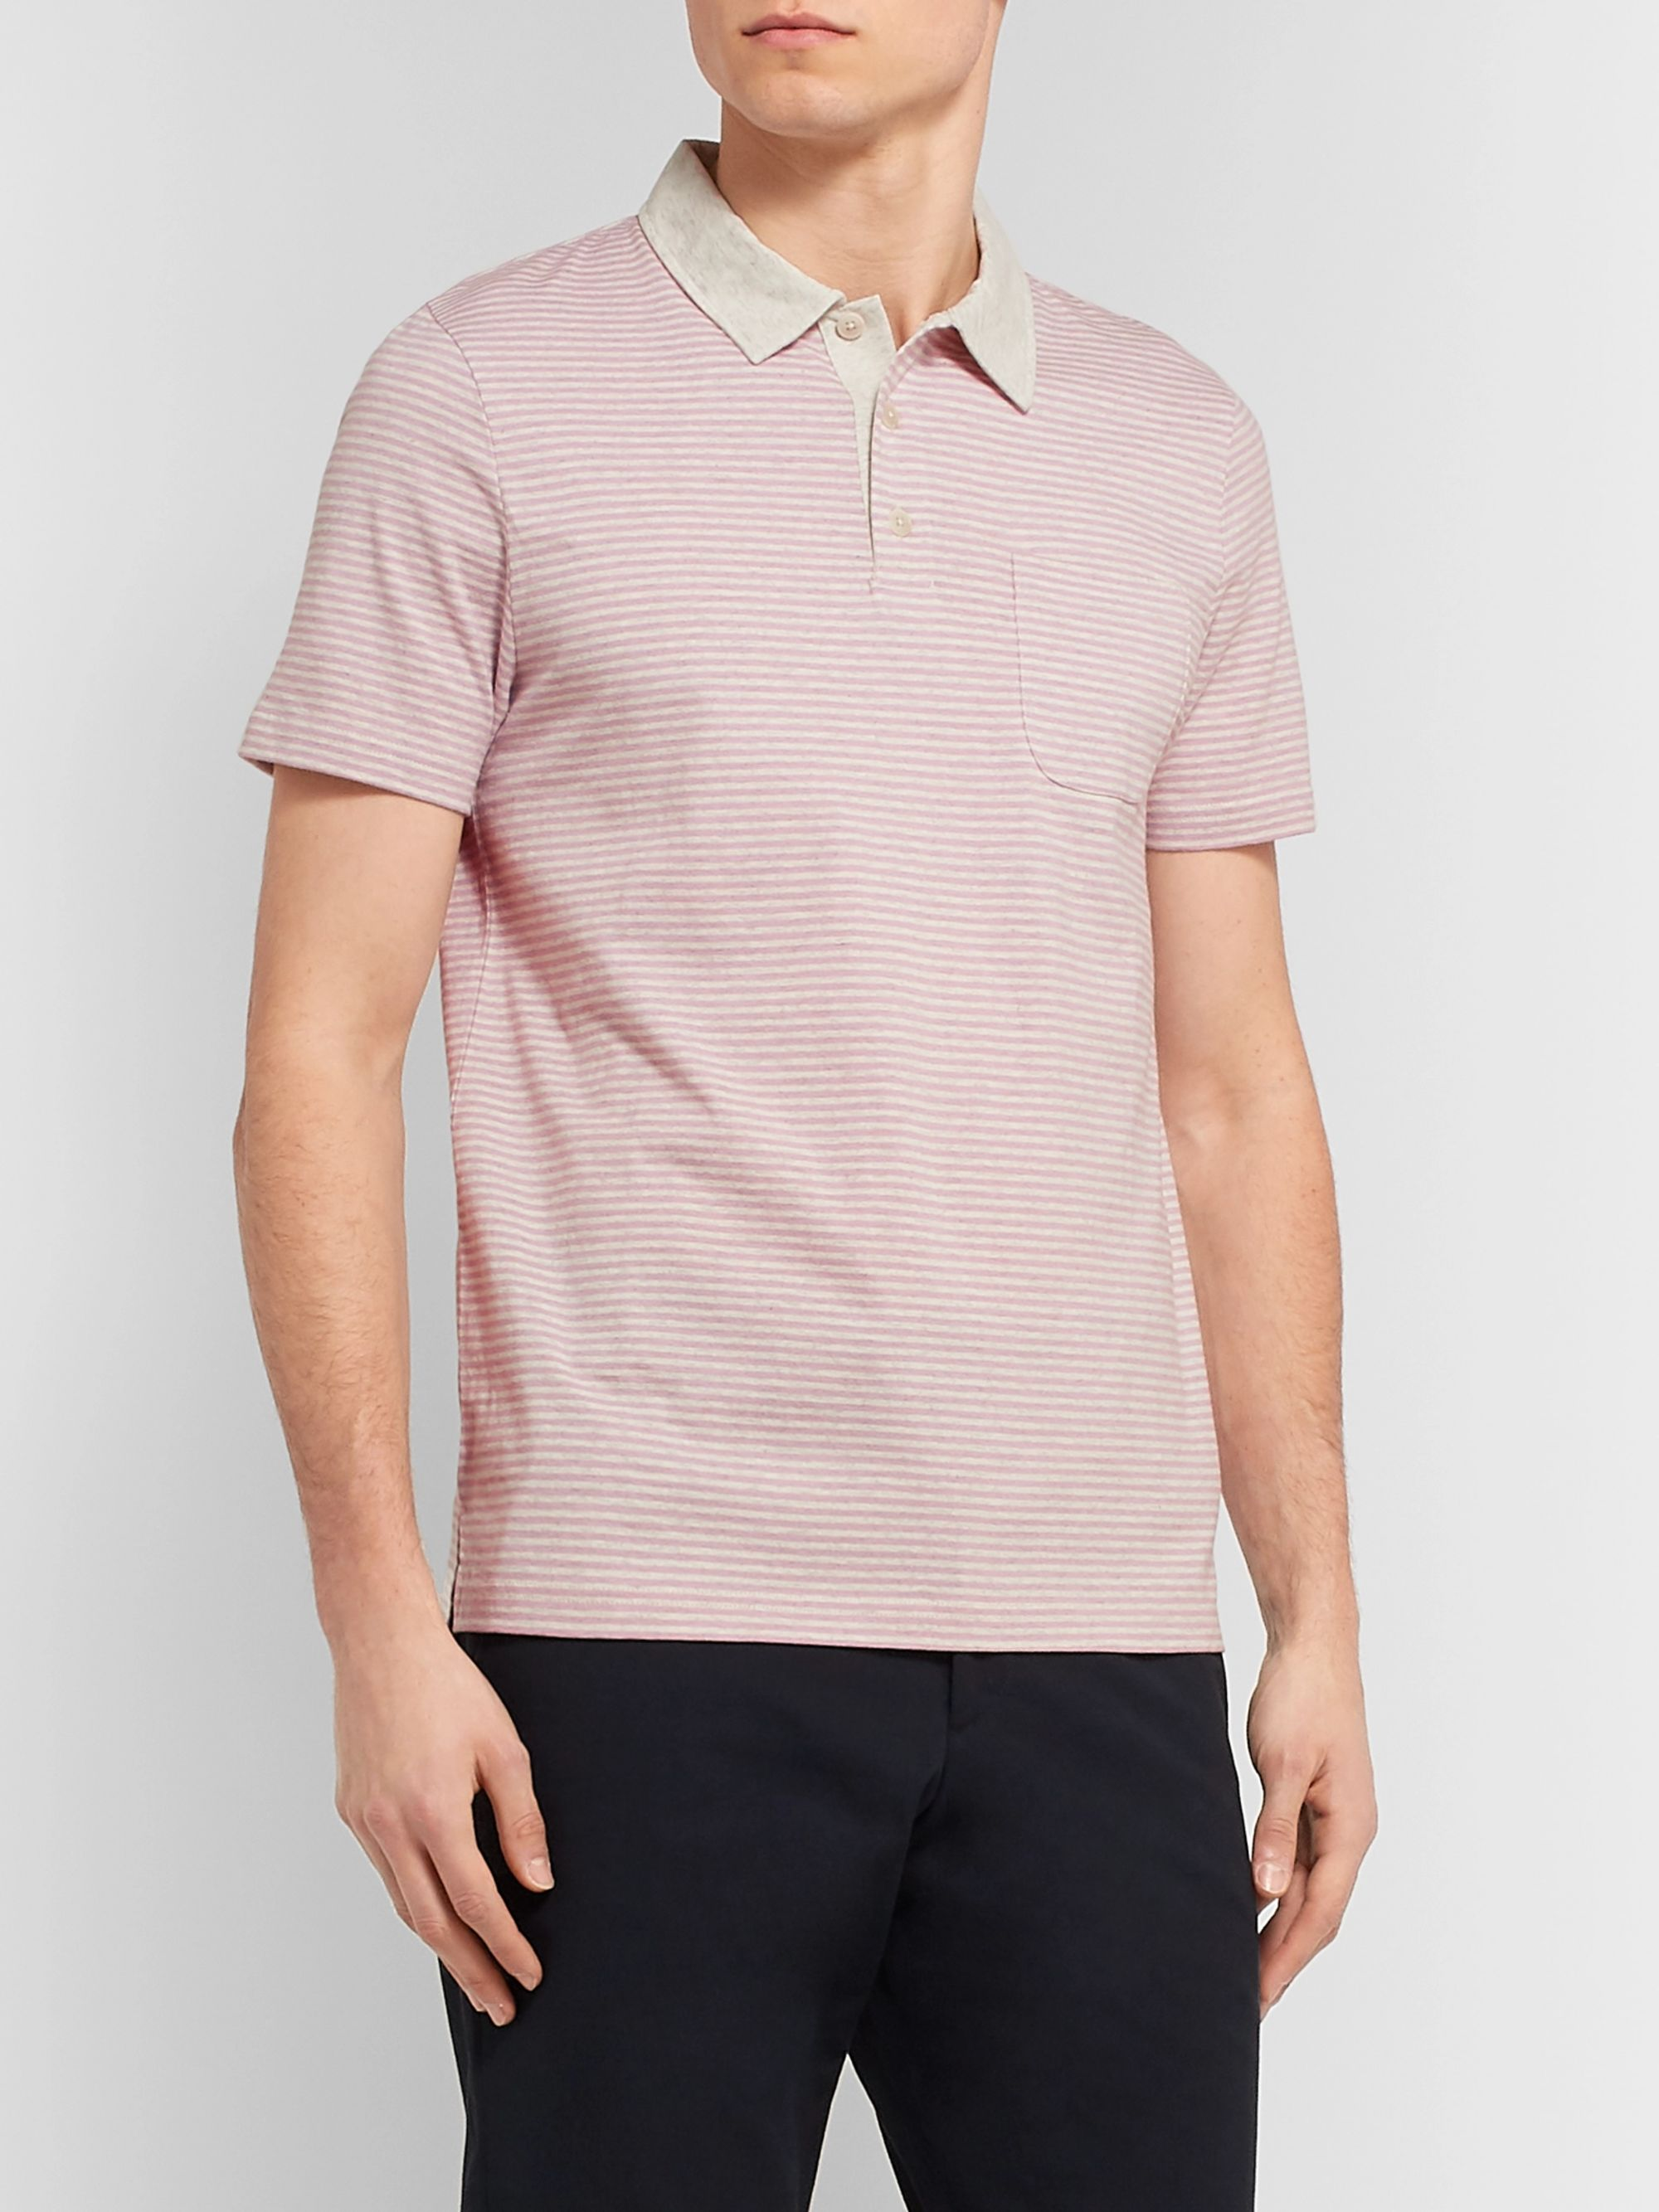 Oliver Spencer Danbury Striped Mélange Cotton-Jersey Polo Shirt